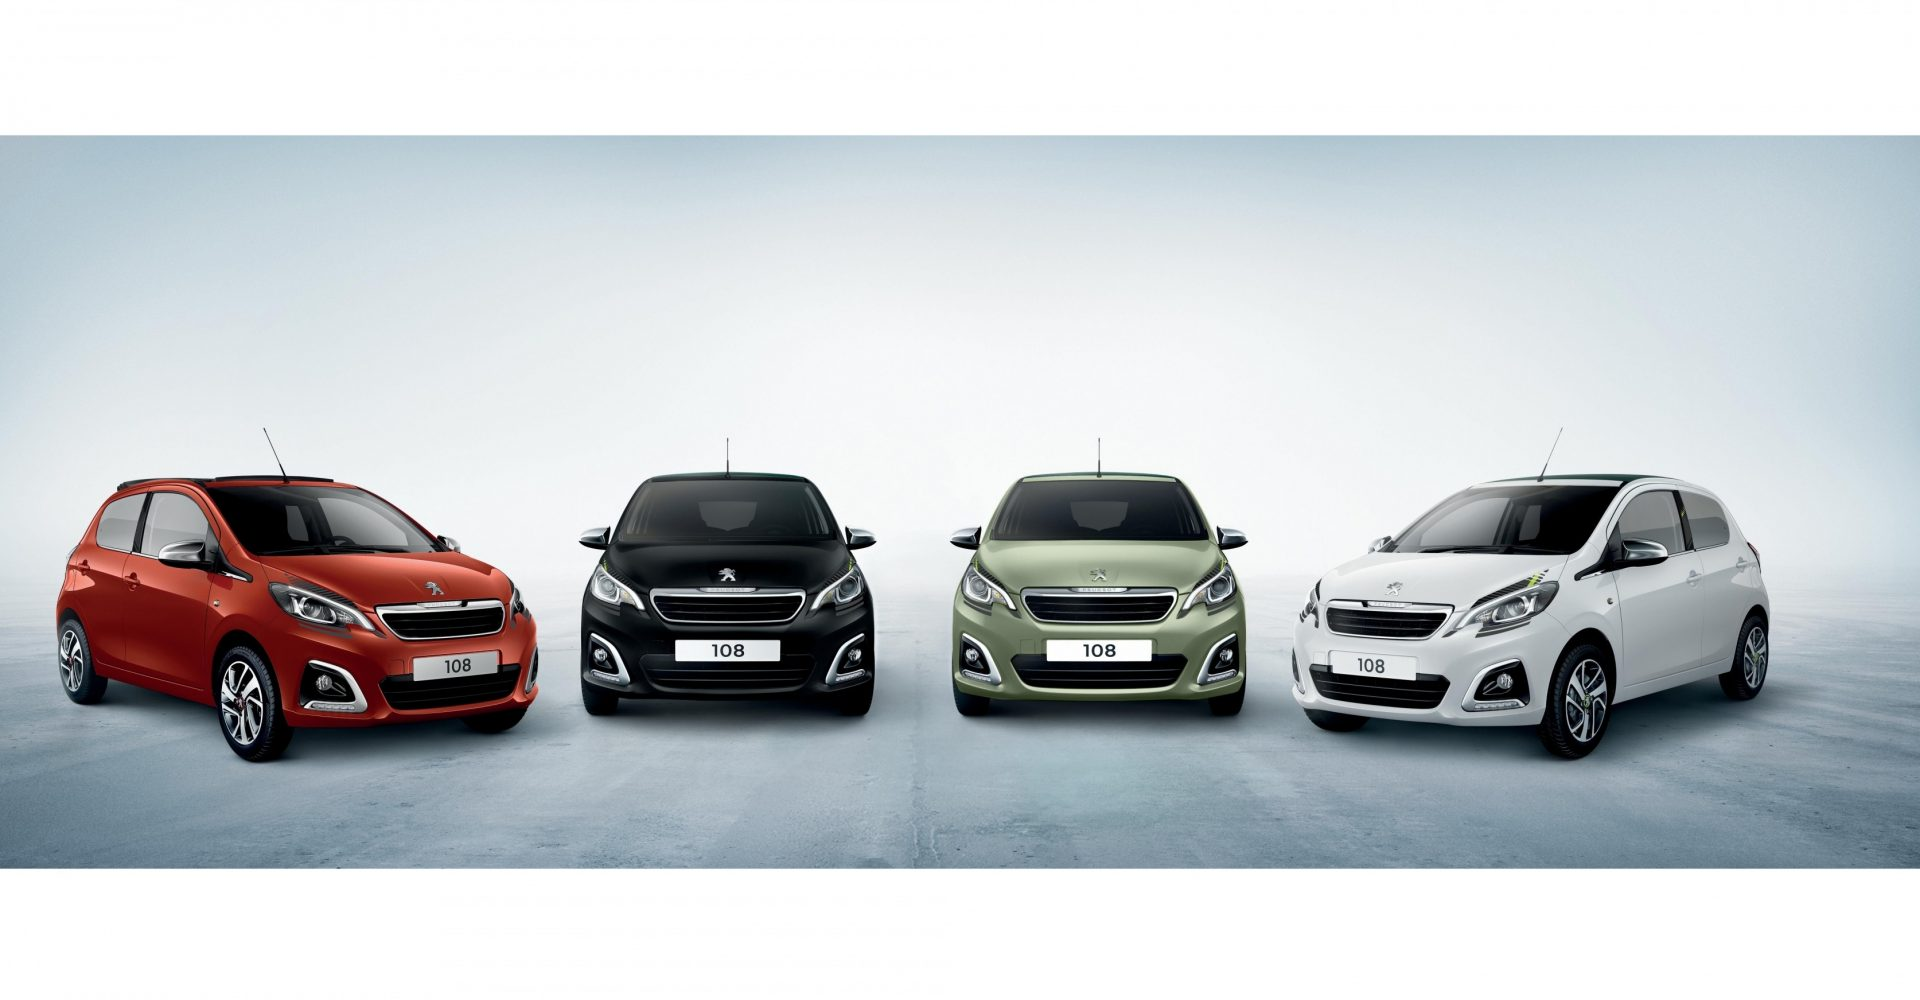 Peugeot updates 108 with new exterior shades and personalisation options